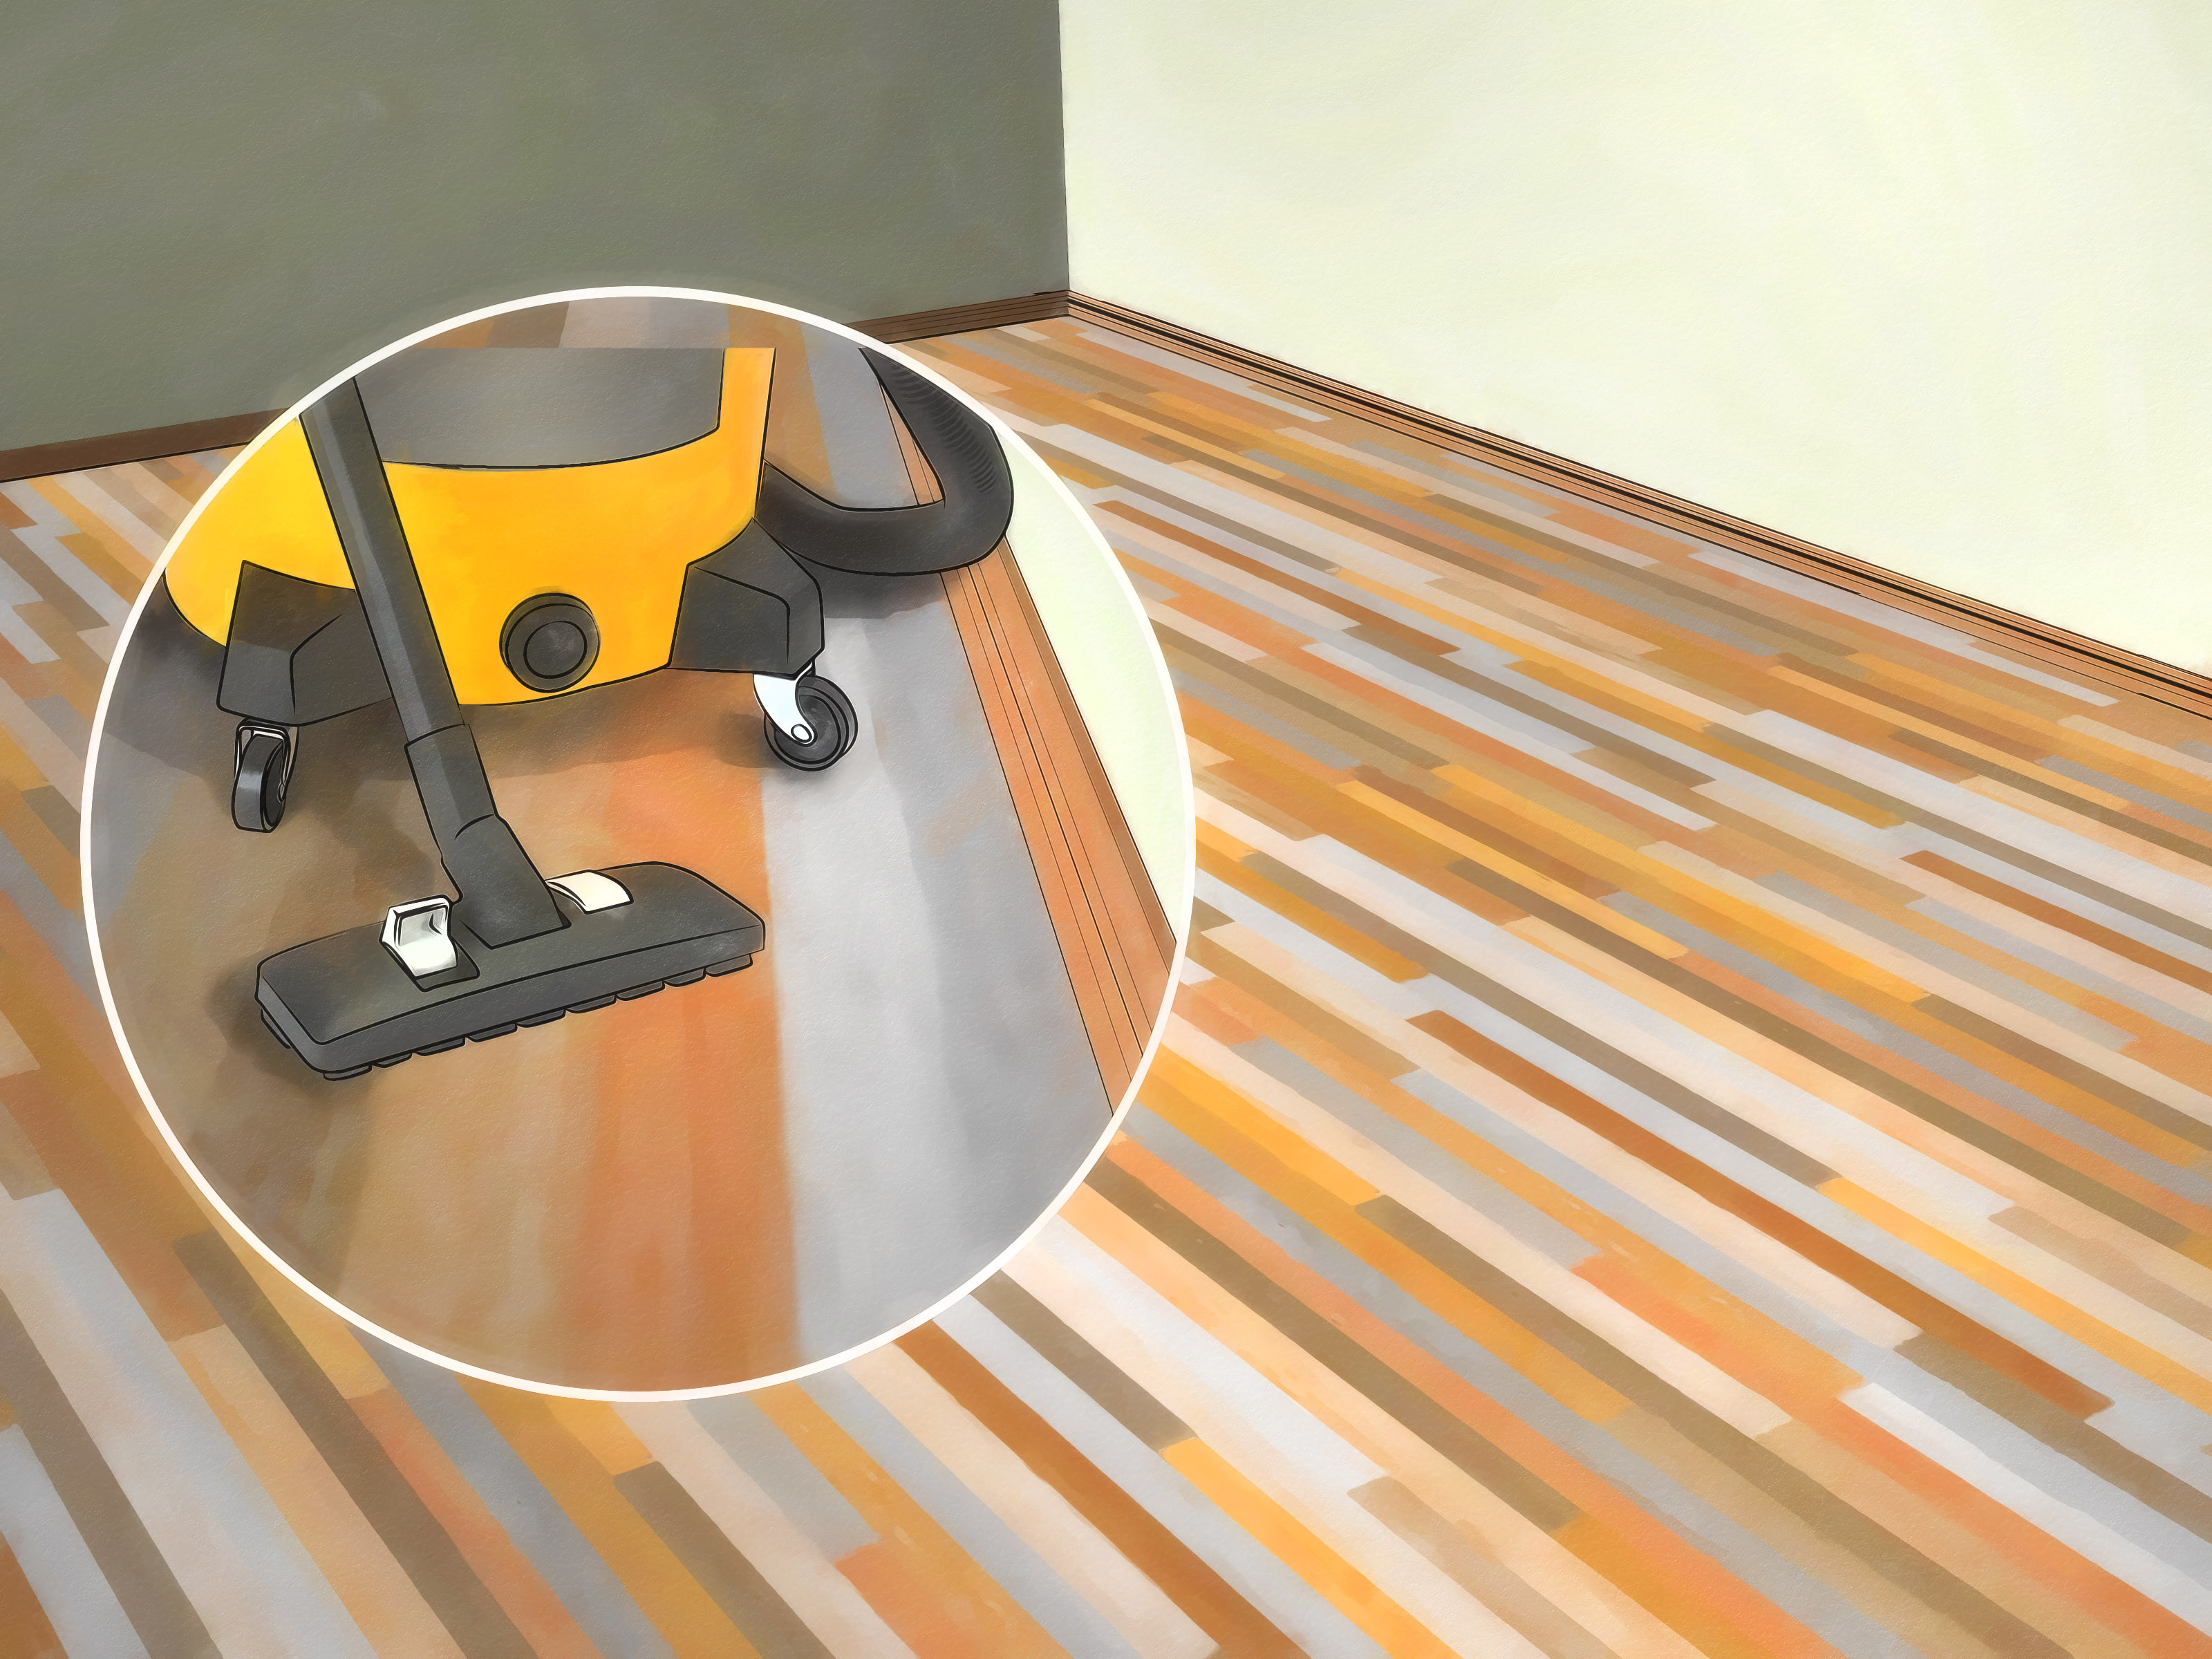 hardwood floor refinishing process of how to sand hardwood floors with pictures wikihow pertaining to sand hardwood floors step 22